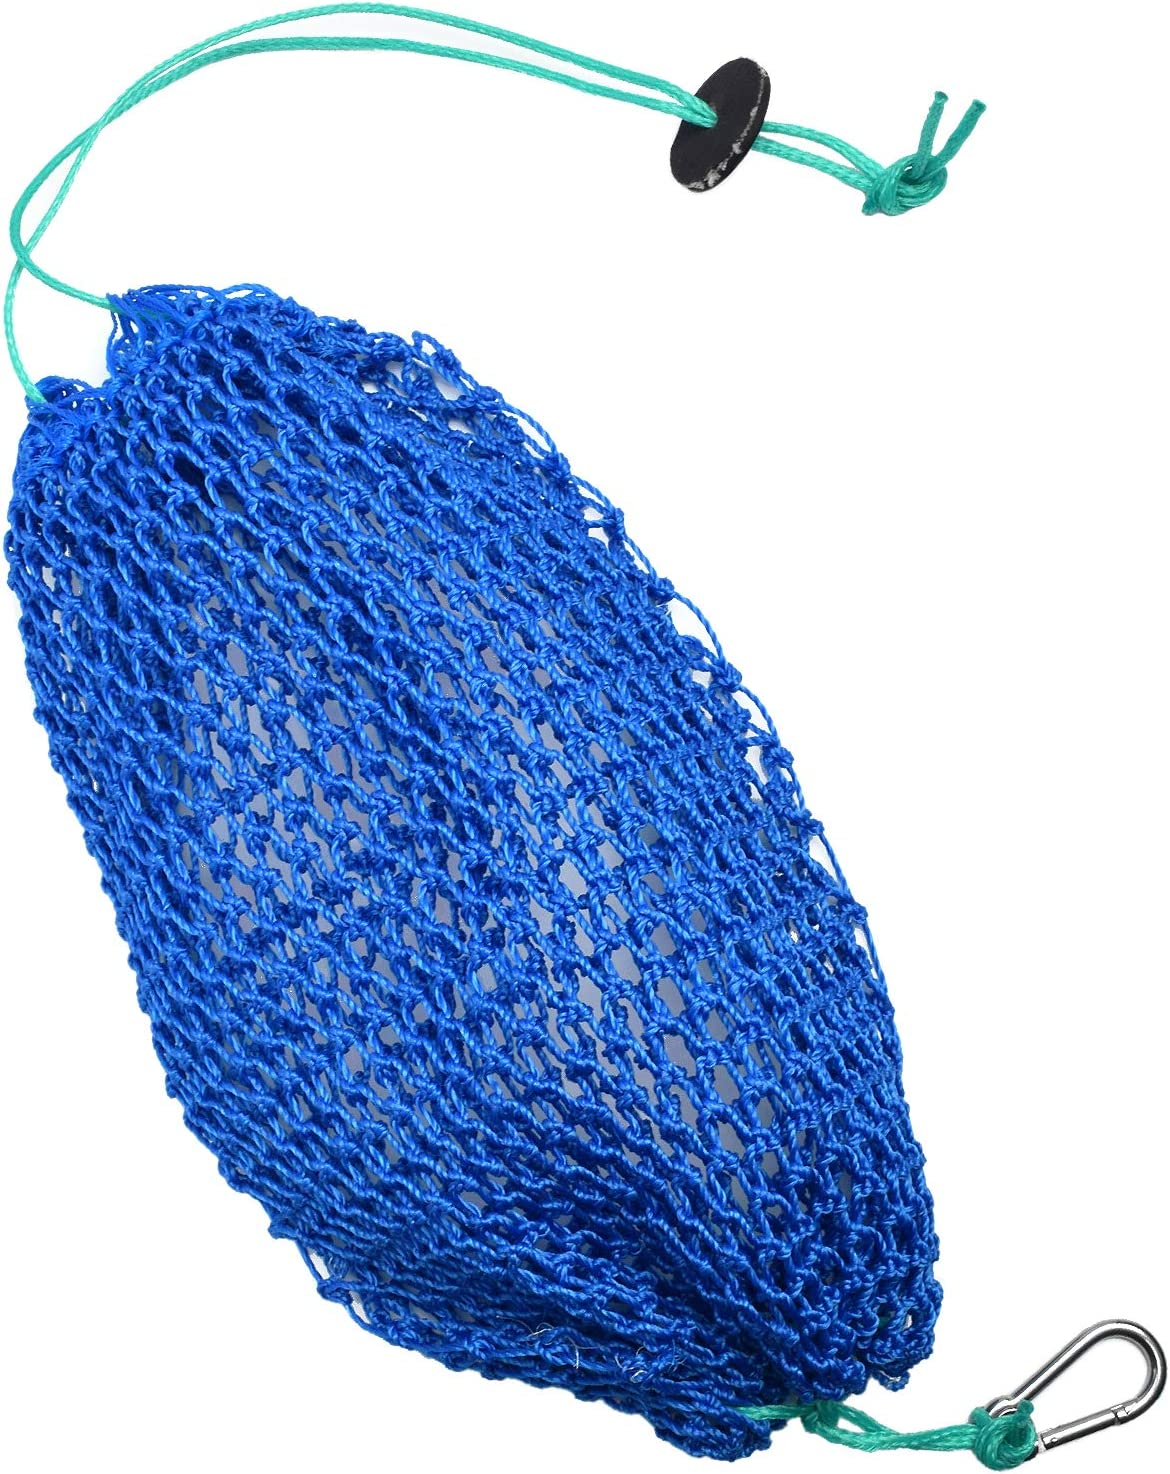 SF Mesh Bait Bags with Rubber Locker for Fishing Crab Traps Catfishing